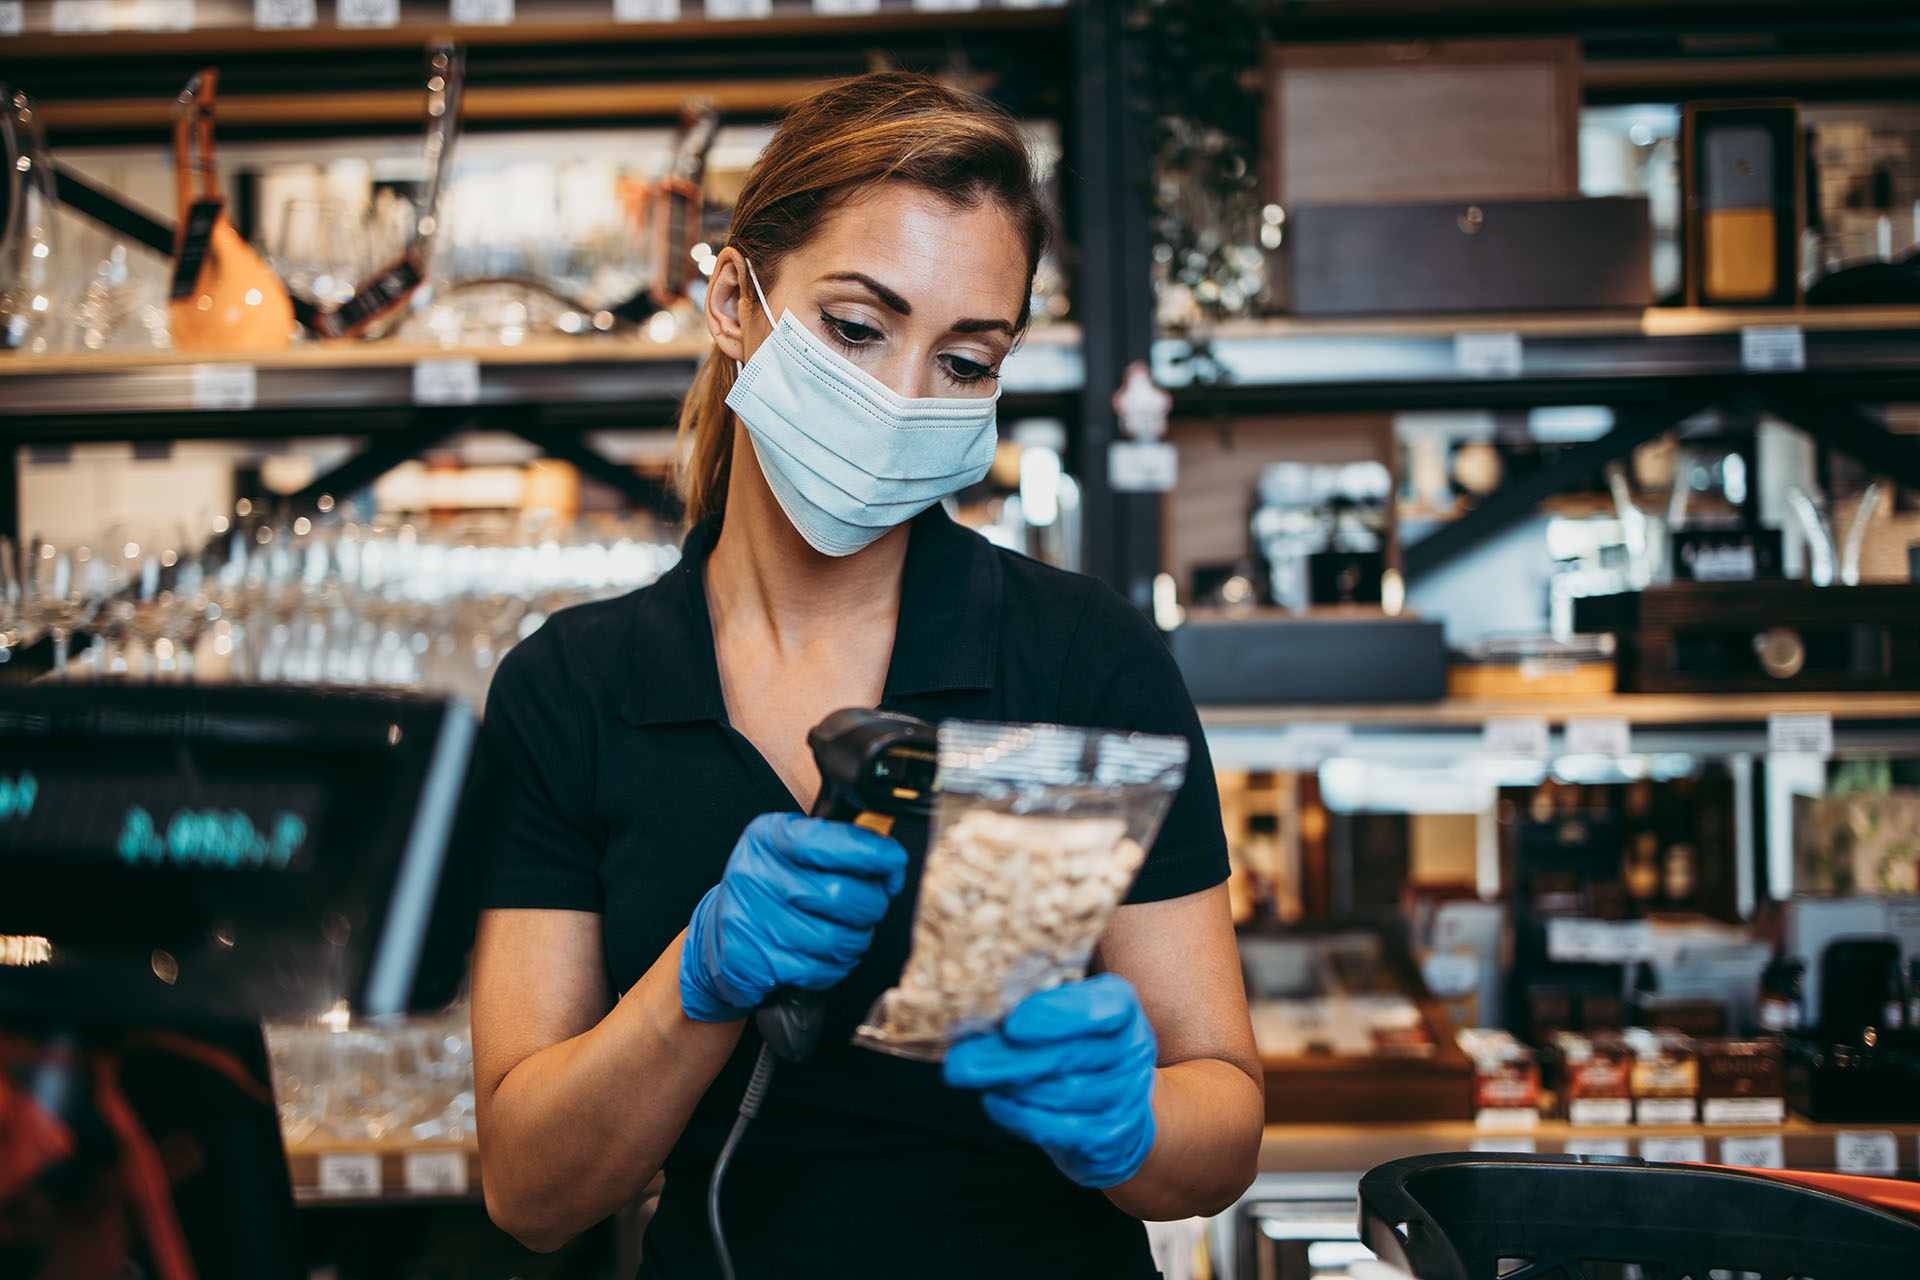 Barista scans packet of nuts | Featured image for HLTSS ICRT65 FOR RETAIL.